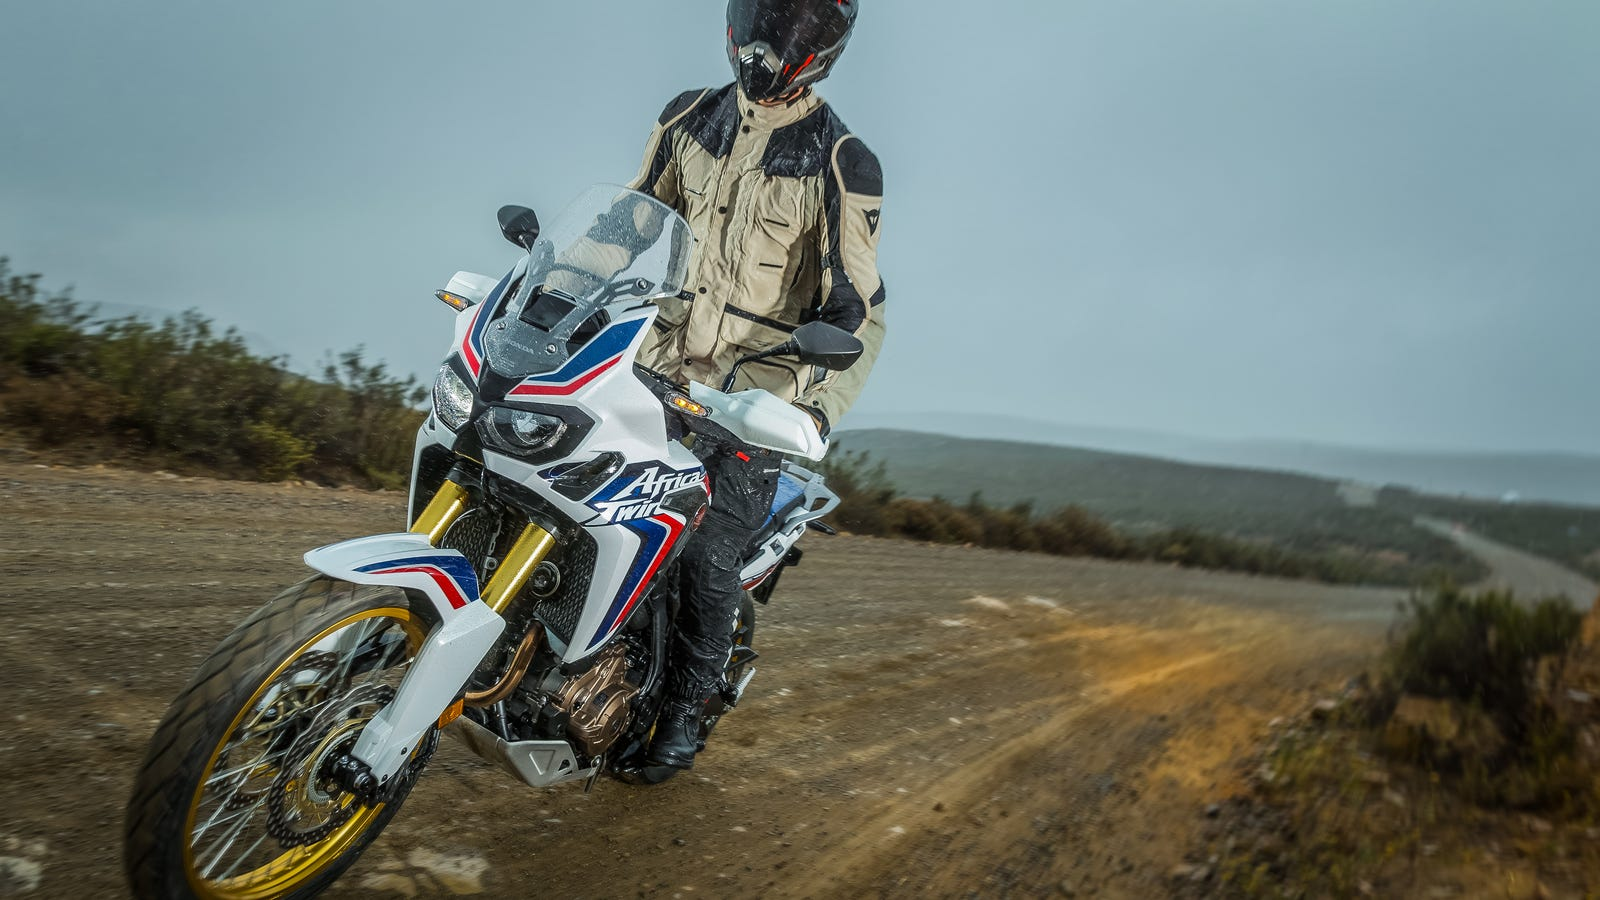 Here S The Adventure Gear I Wore To Test The Honda Africa